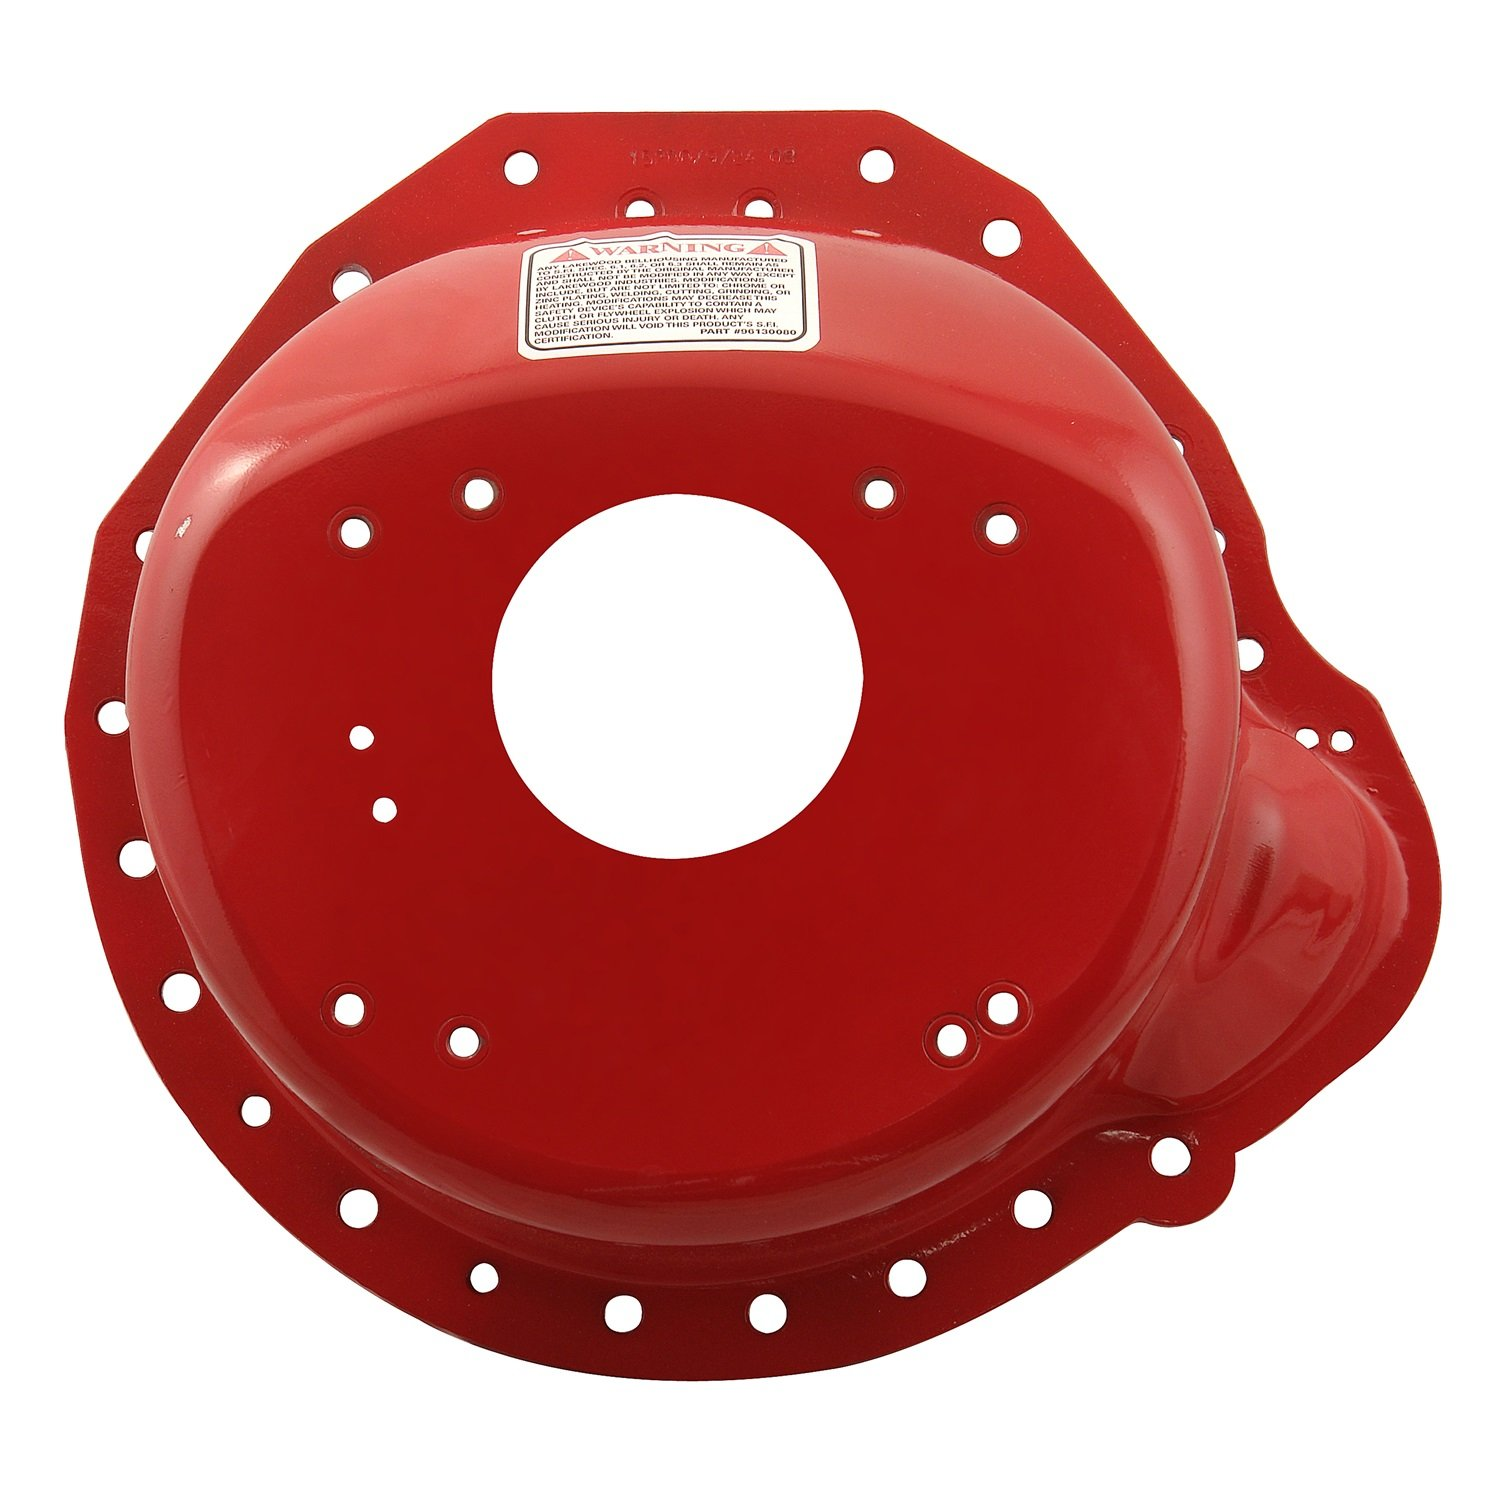 Lakewood 15200 Safety Bellhousing by Lakewood